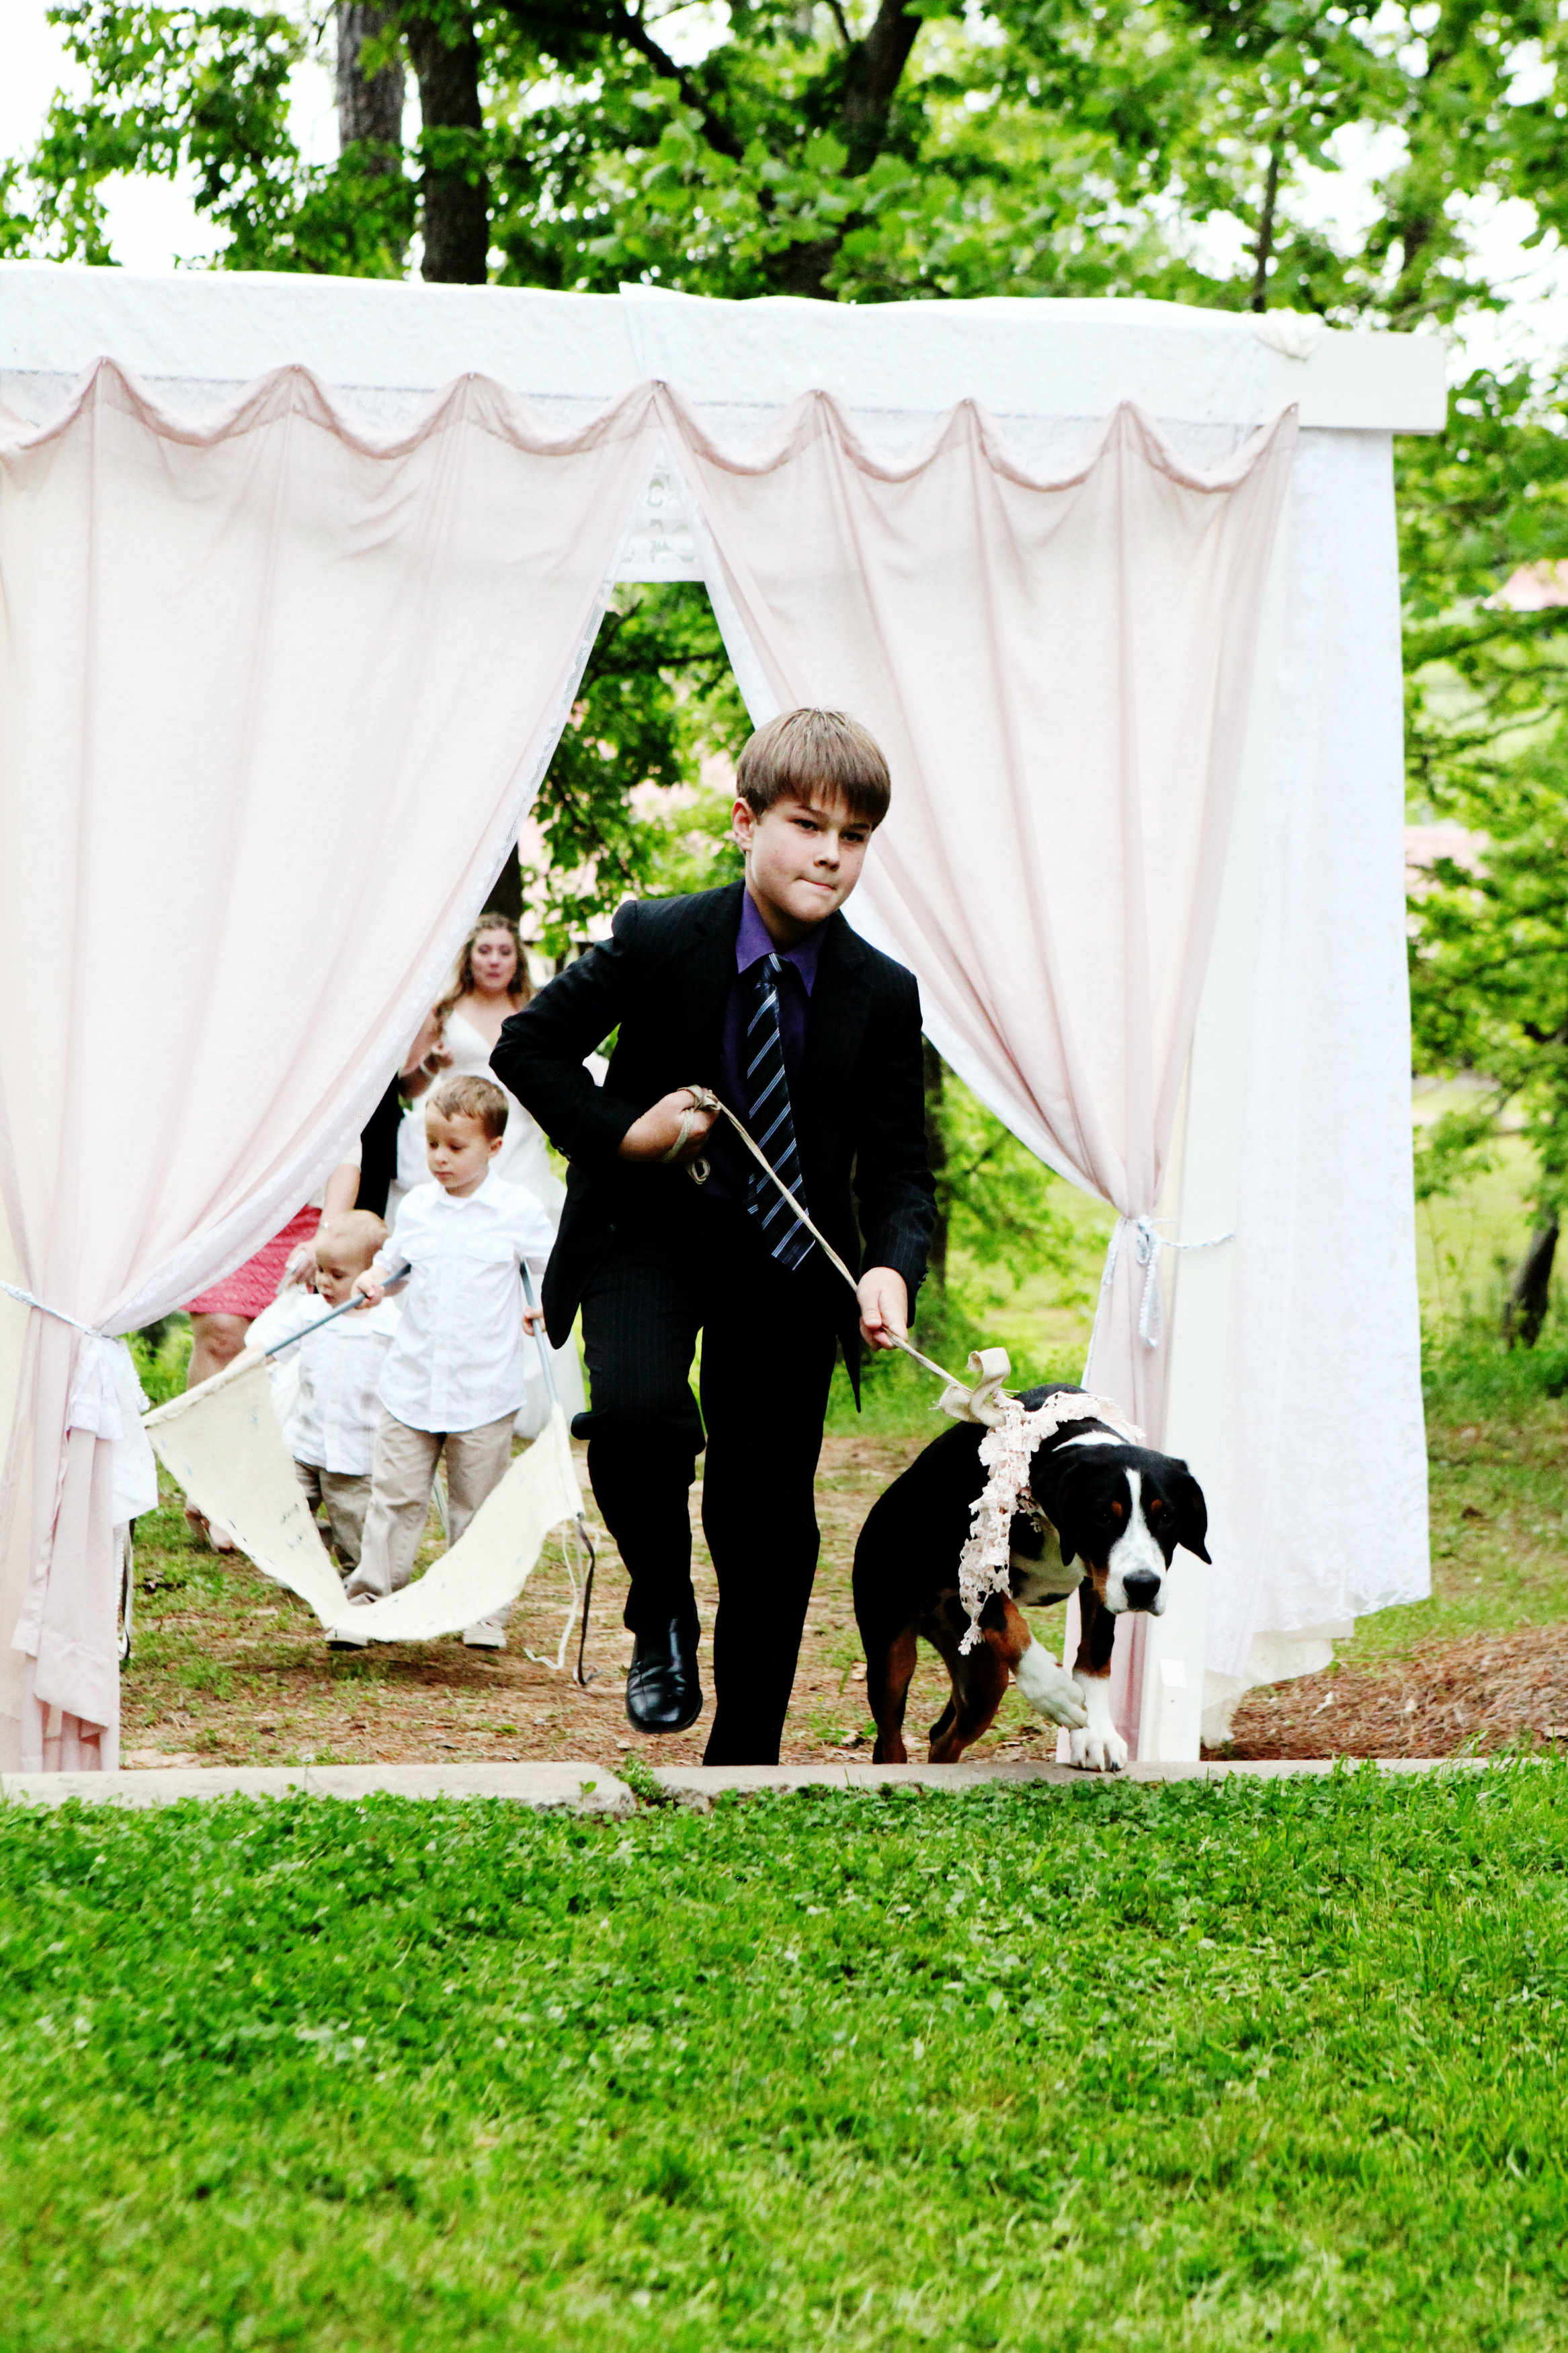 We know it meant a lot to Callie & Billy to have their dog, Molly, involved in such a special day.